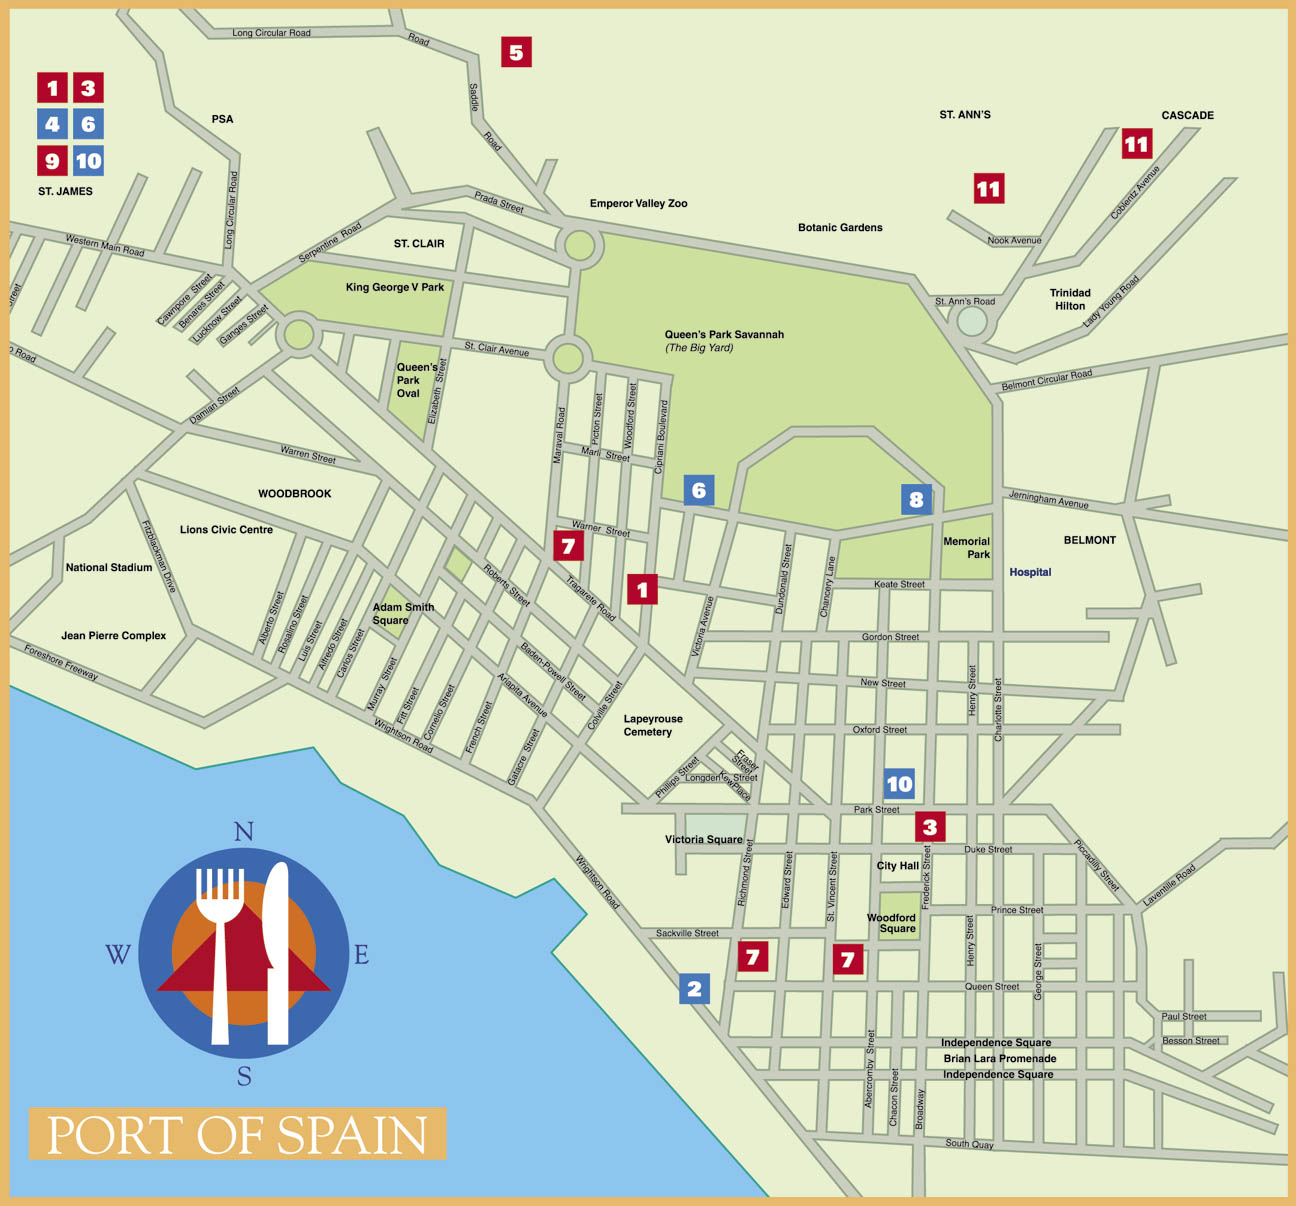 Food map of Port of Spain